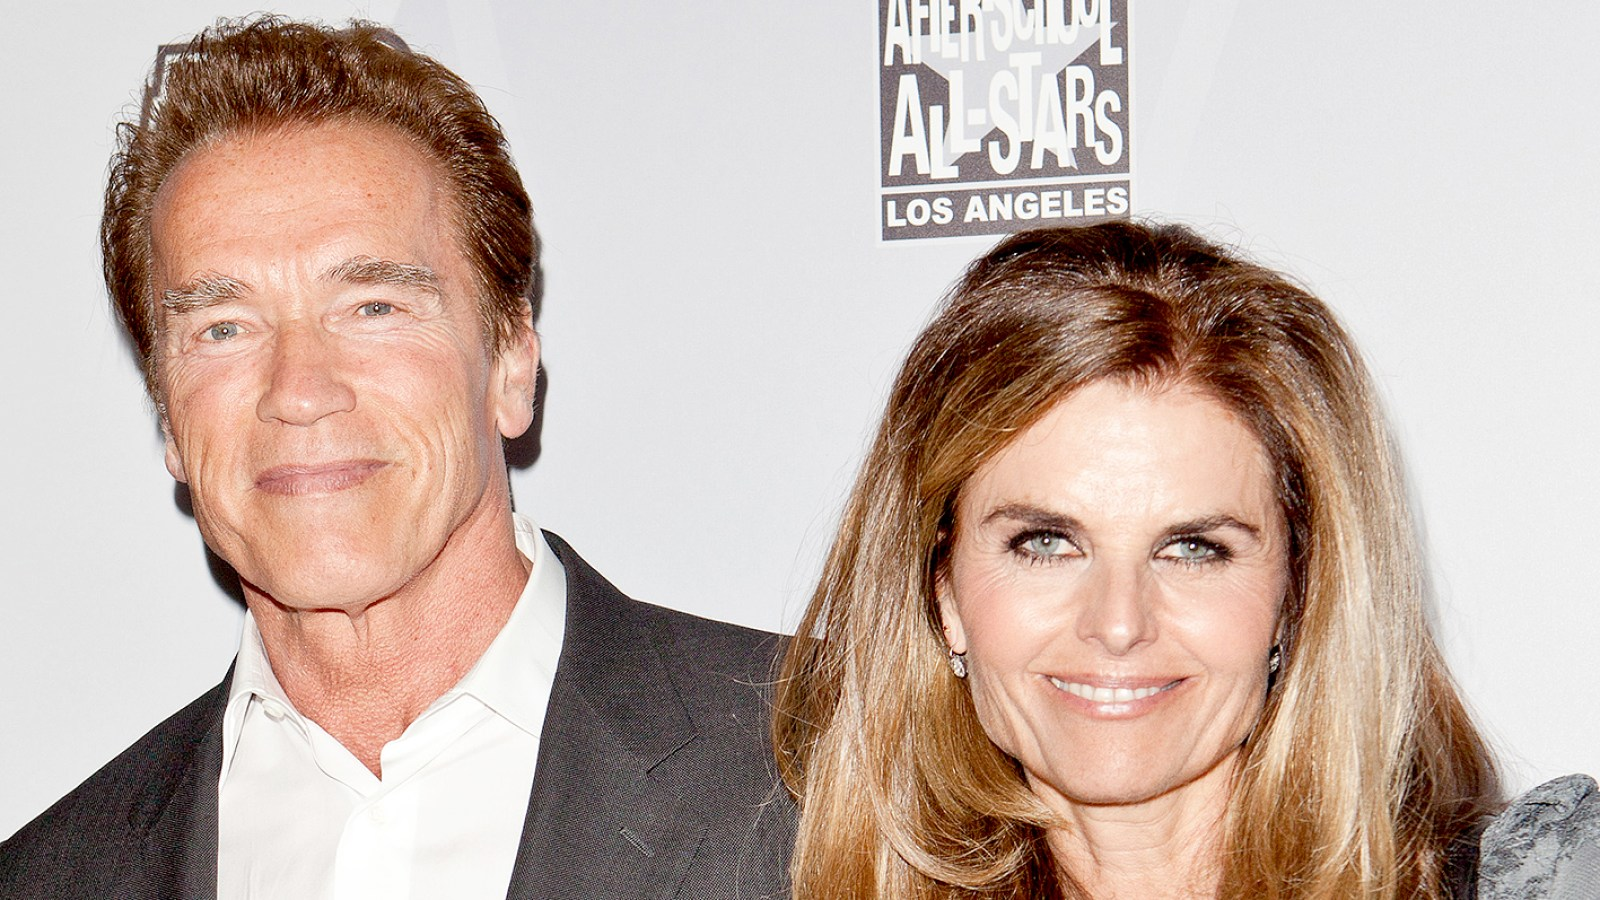 Arnold Schwarzenegger Opens Up About Cheating on Maria Shriver